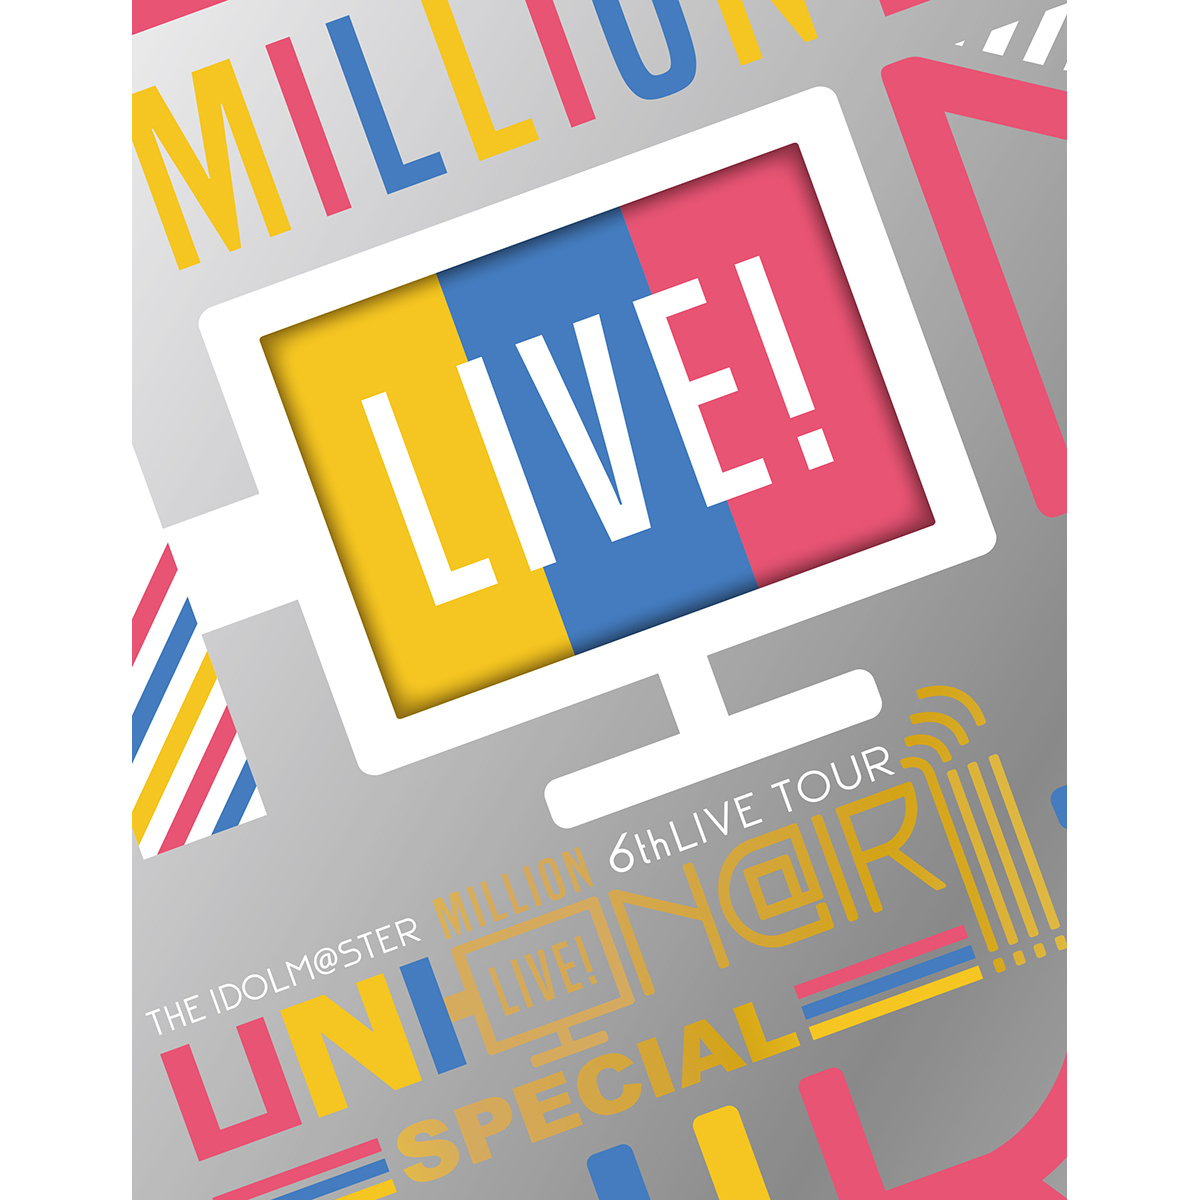 THE IDOLM@STER MILLION LIVE! 6thLIVE TOUR UNI-ON@IR!!!! LIVE Blu-ray SPECIAL COMPLETE THE@TER [Limited Edition] [Mar 2021 Delivery]